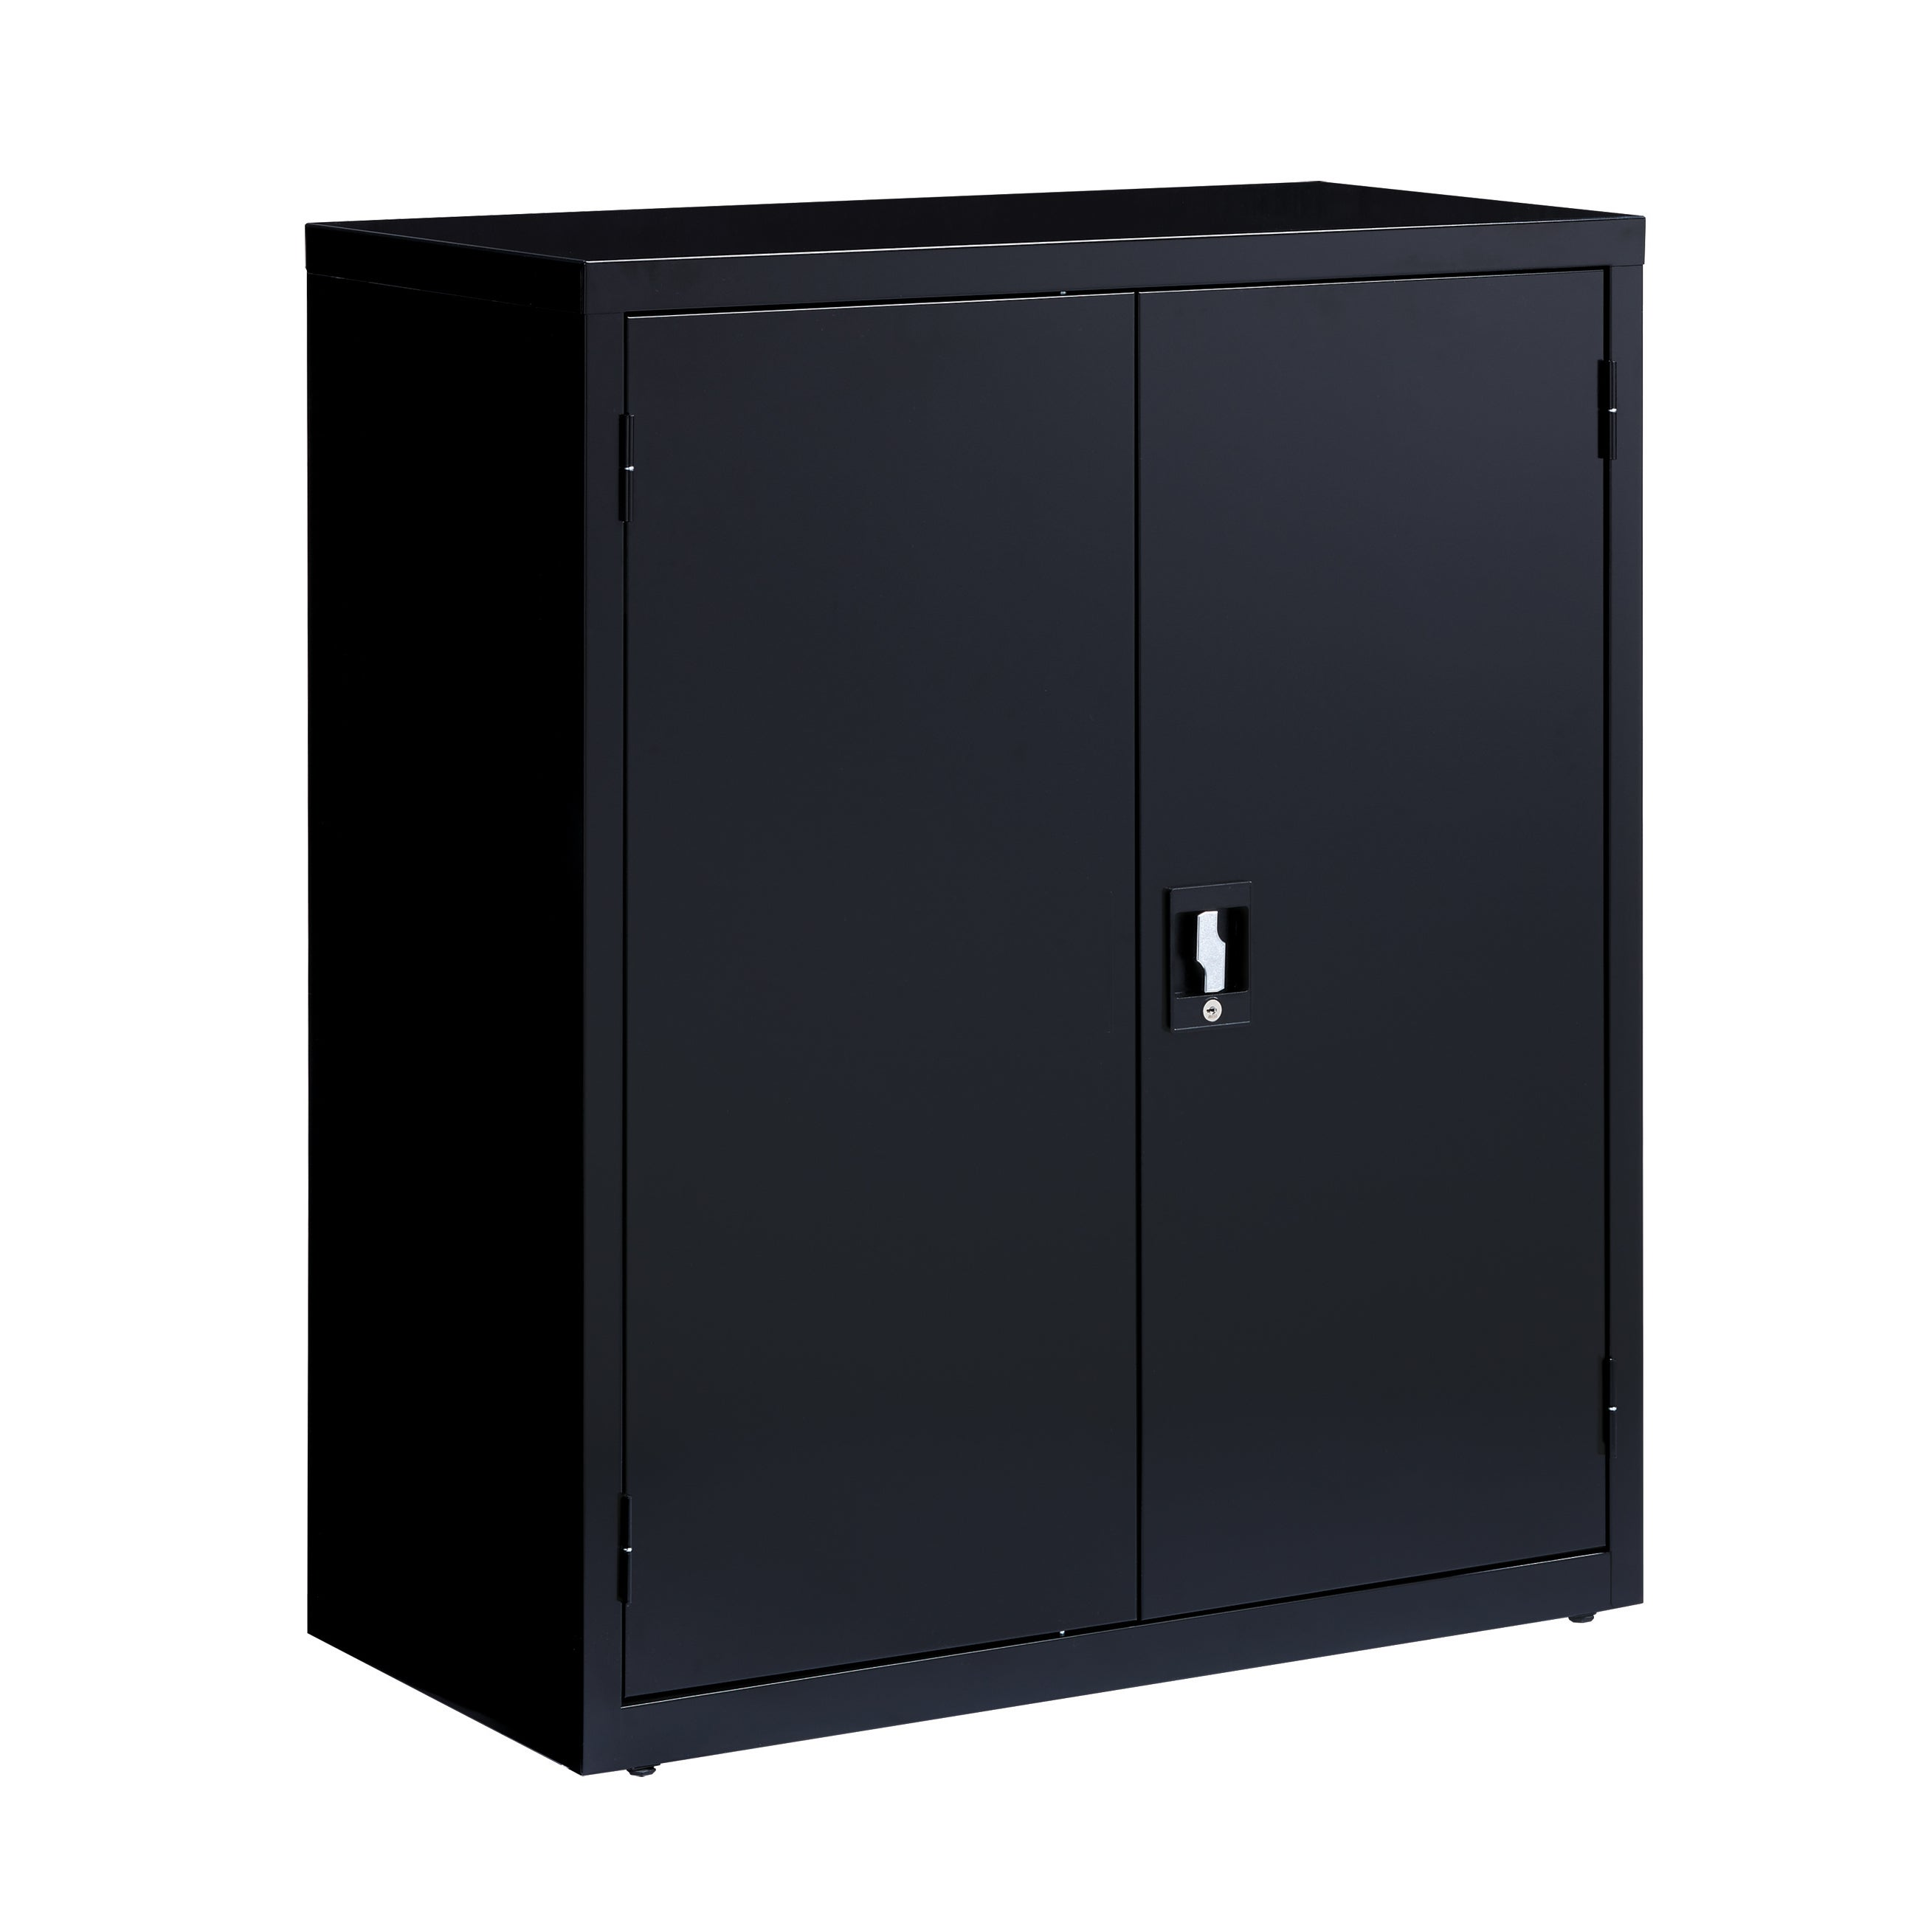 Shop Iron Horse Black Metal Durable 3 Shelf Storage Cabinet   Free Shipping  Today   Overstock.com   14799717